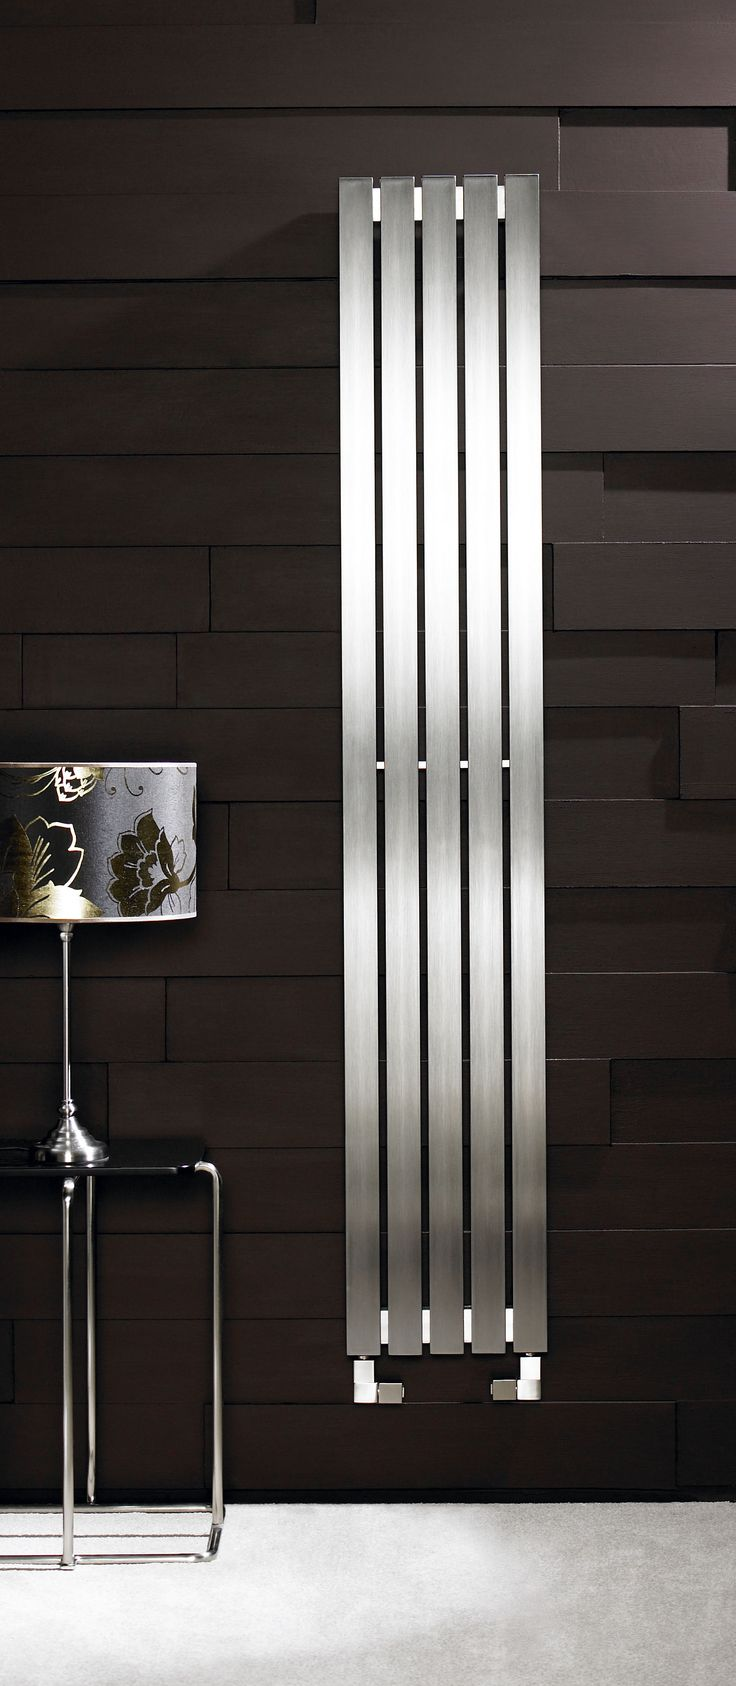 34 best images about bathroom heating on pinterest - Designer vertical radiators for kitchens ...